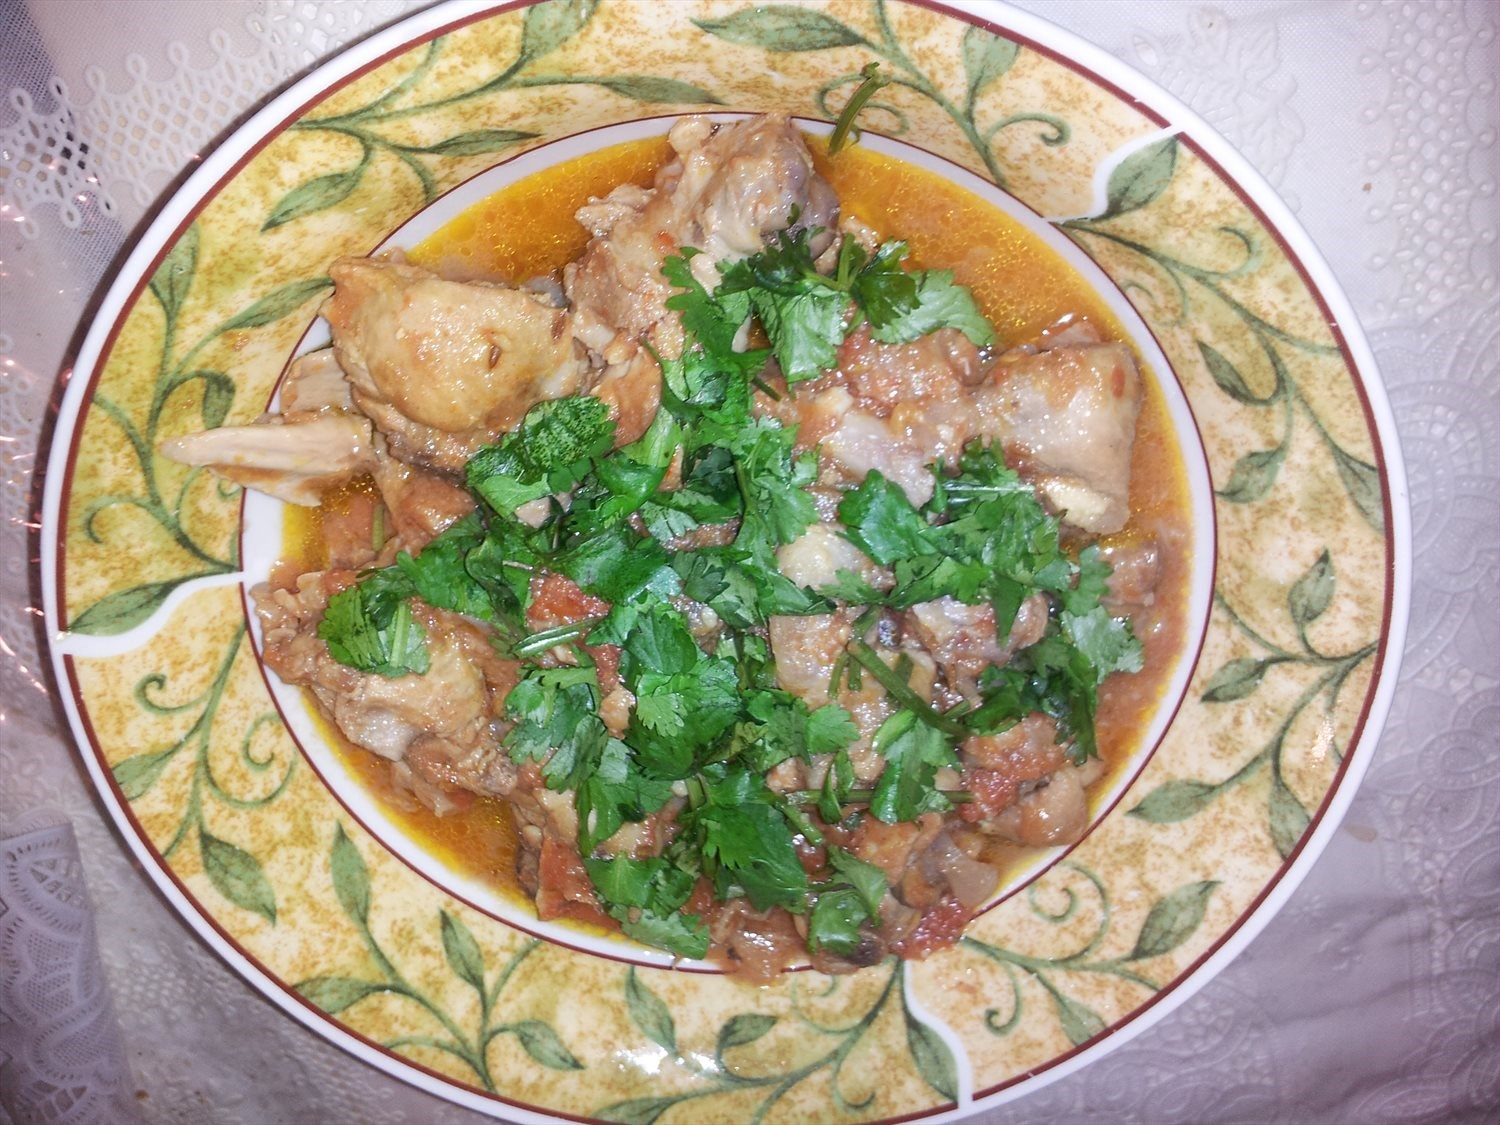 Chicken with Gravy (Chicken Karahi)